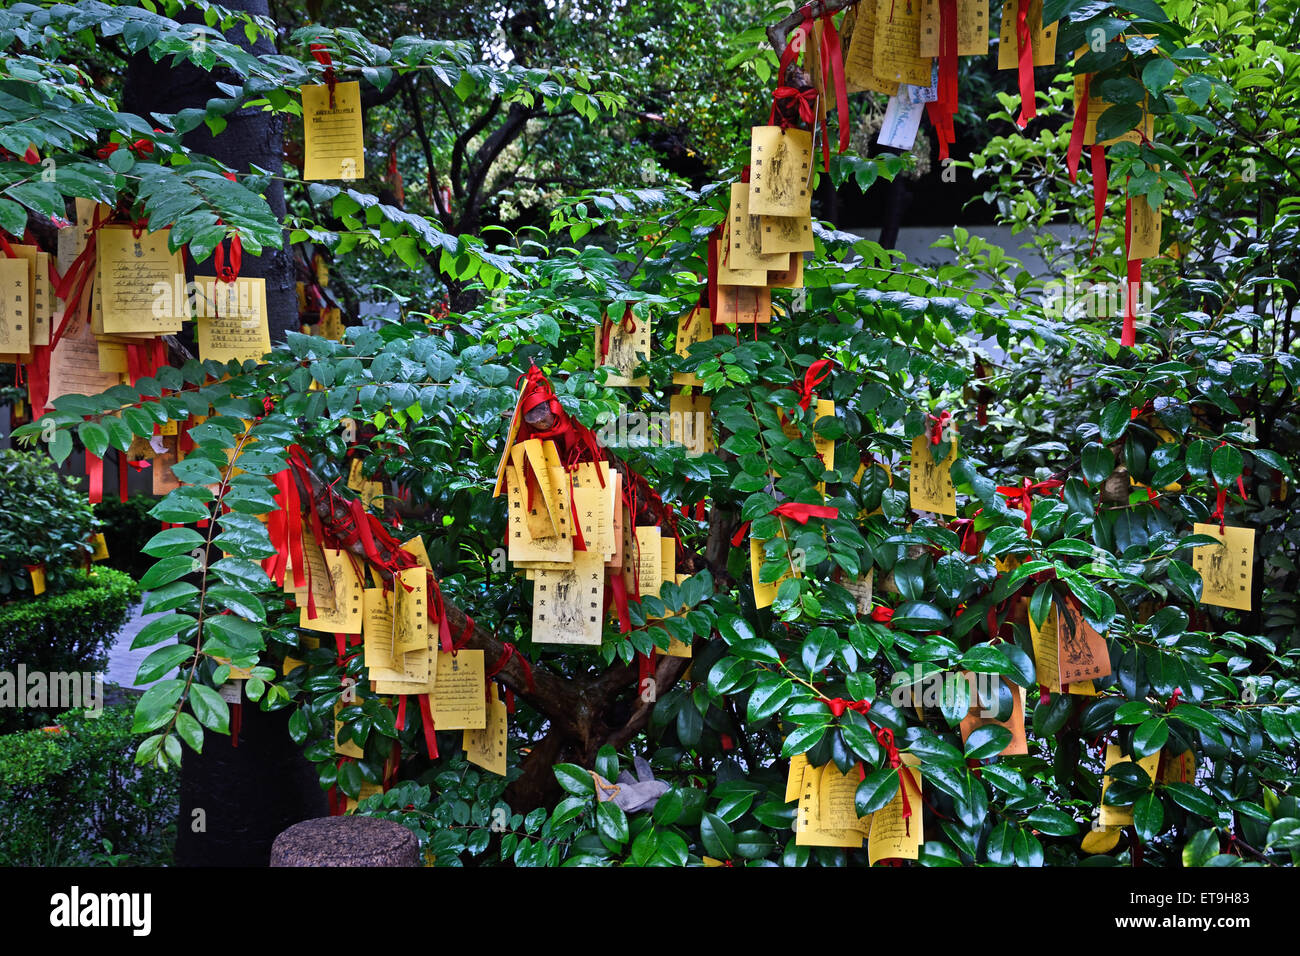 Paper prayers and wishes in the The Shanghai Wen Miao - Shanghai Confucian Temple is an ancient temple  ( 700 years - Stock Image